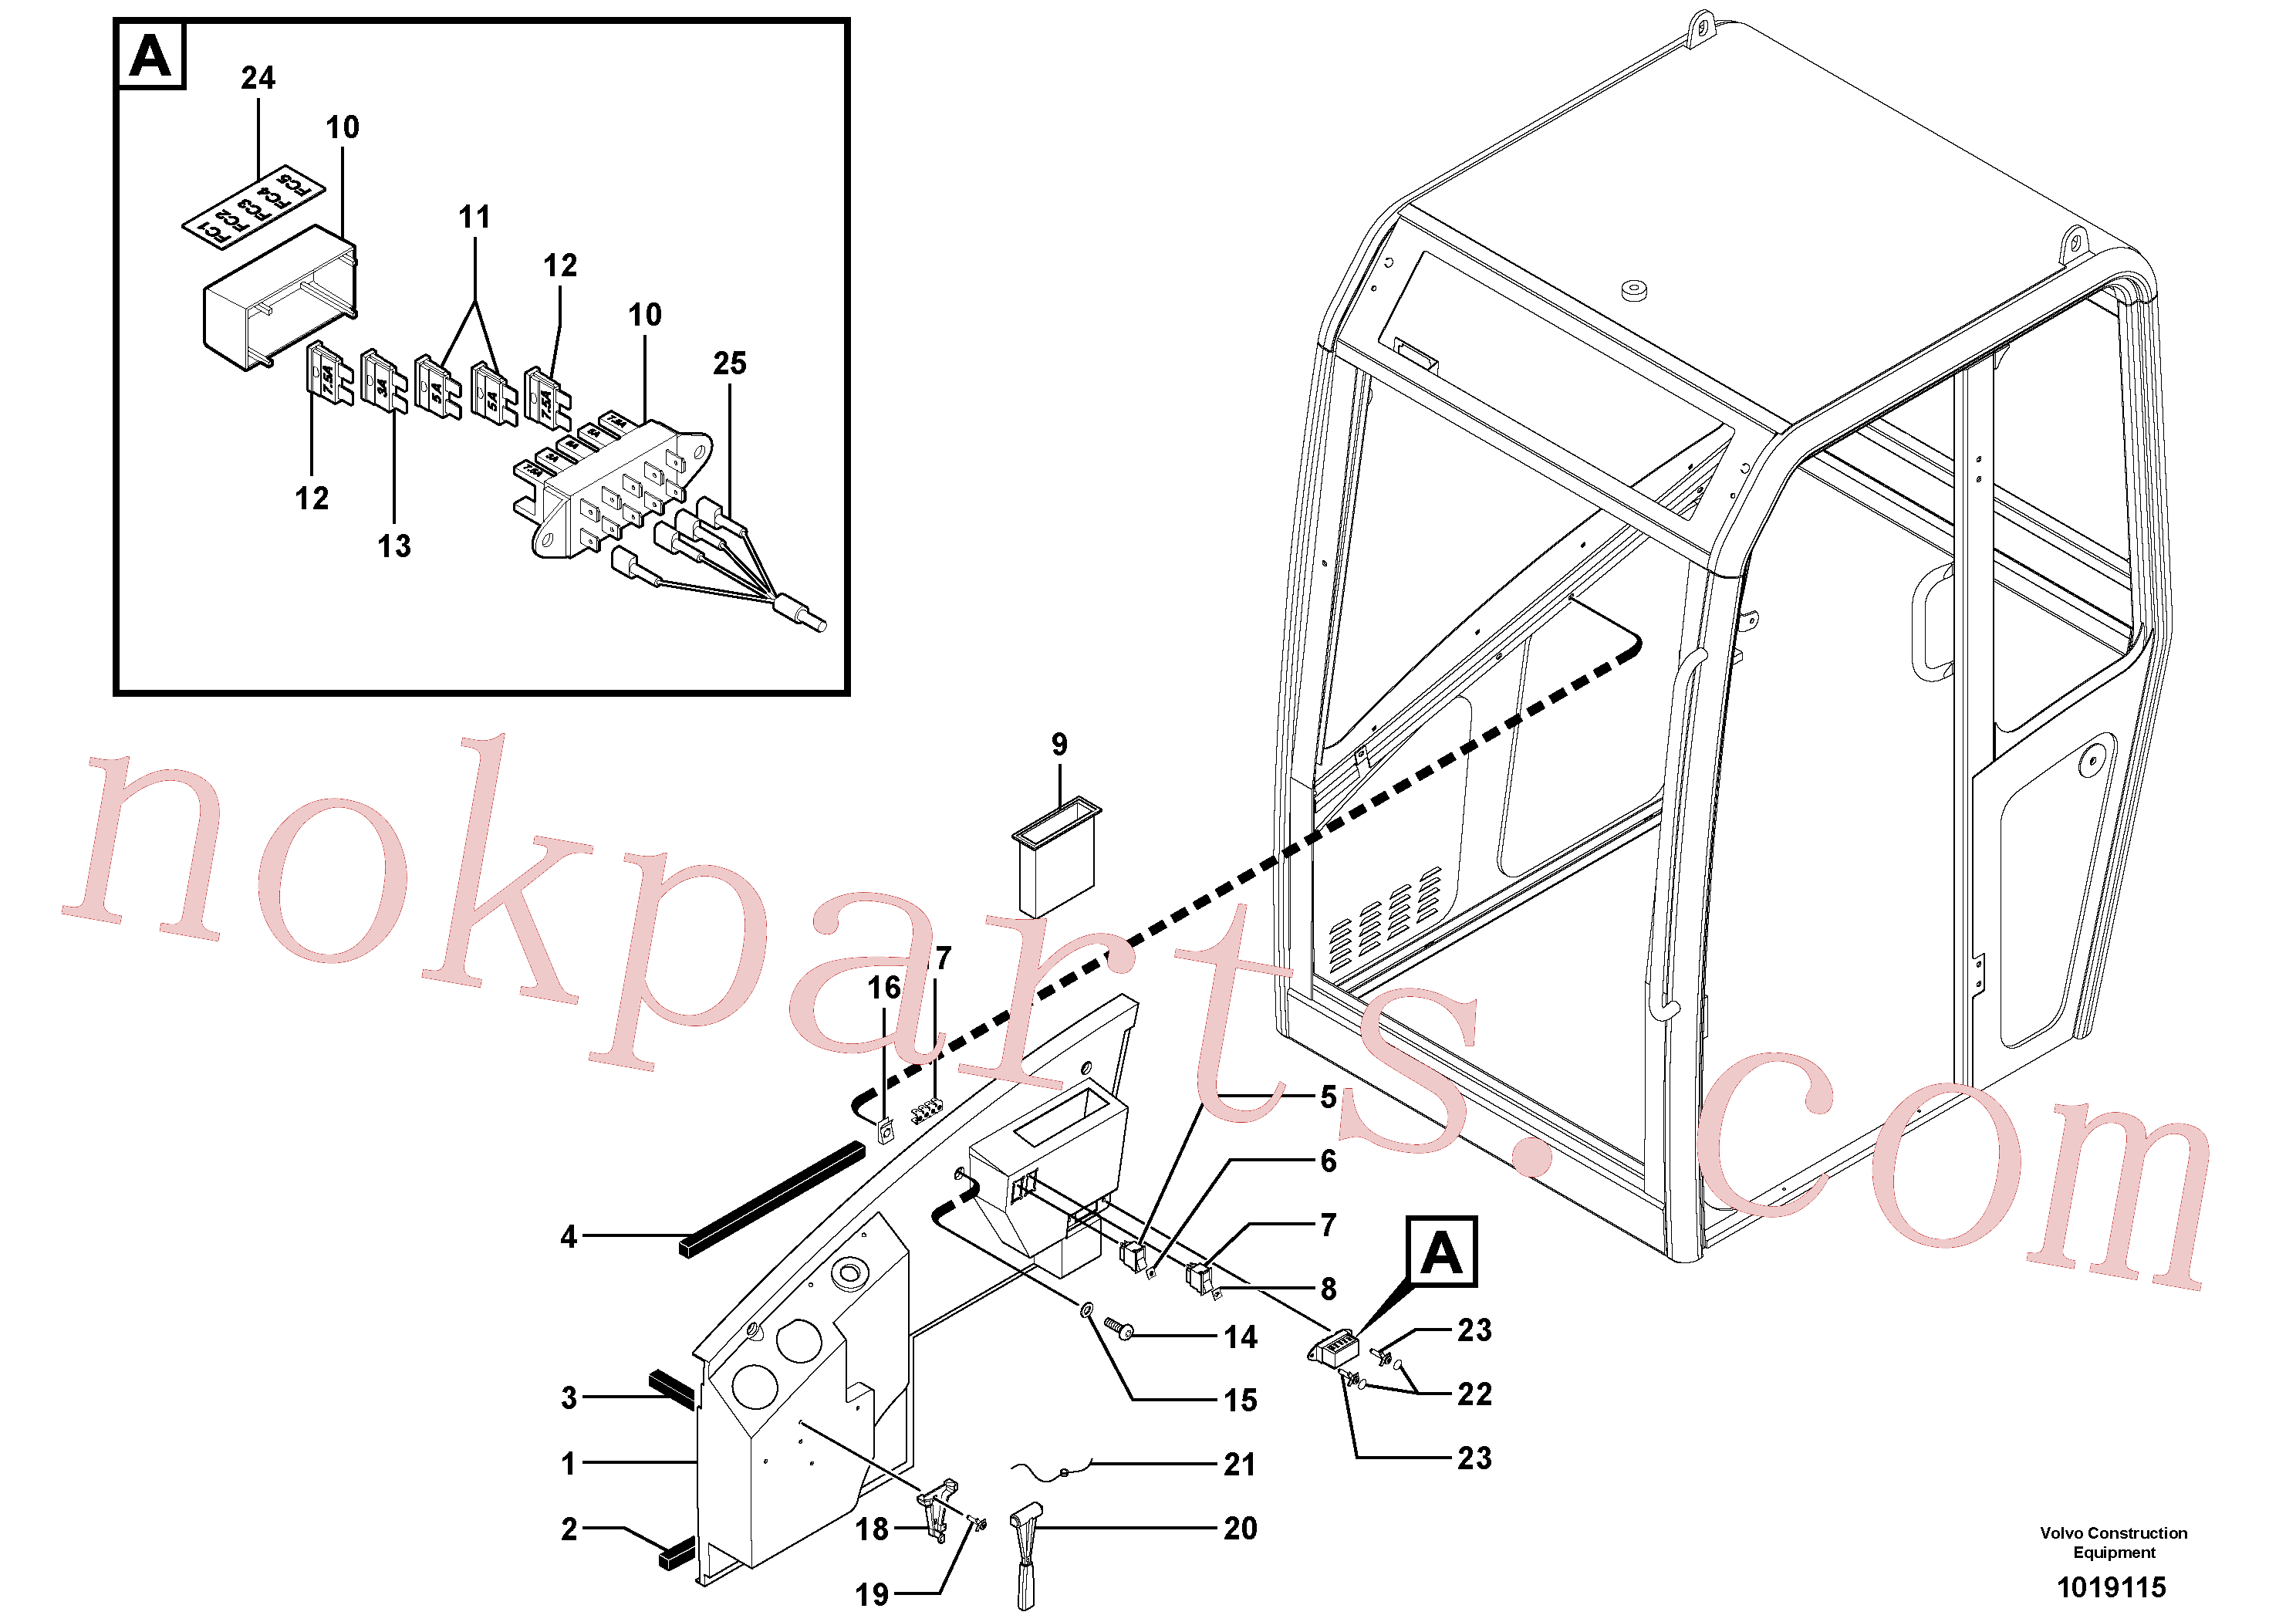 PJ5120013 for Volvo Cab : console(1019115 assembly)